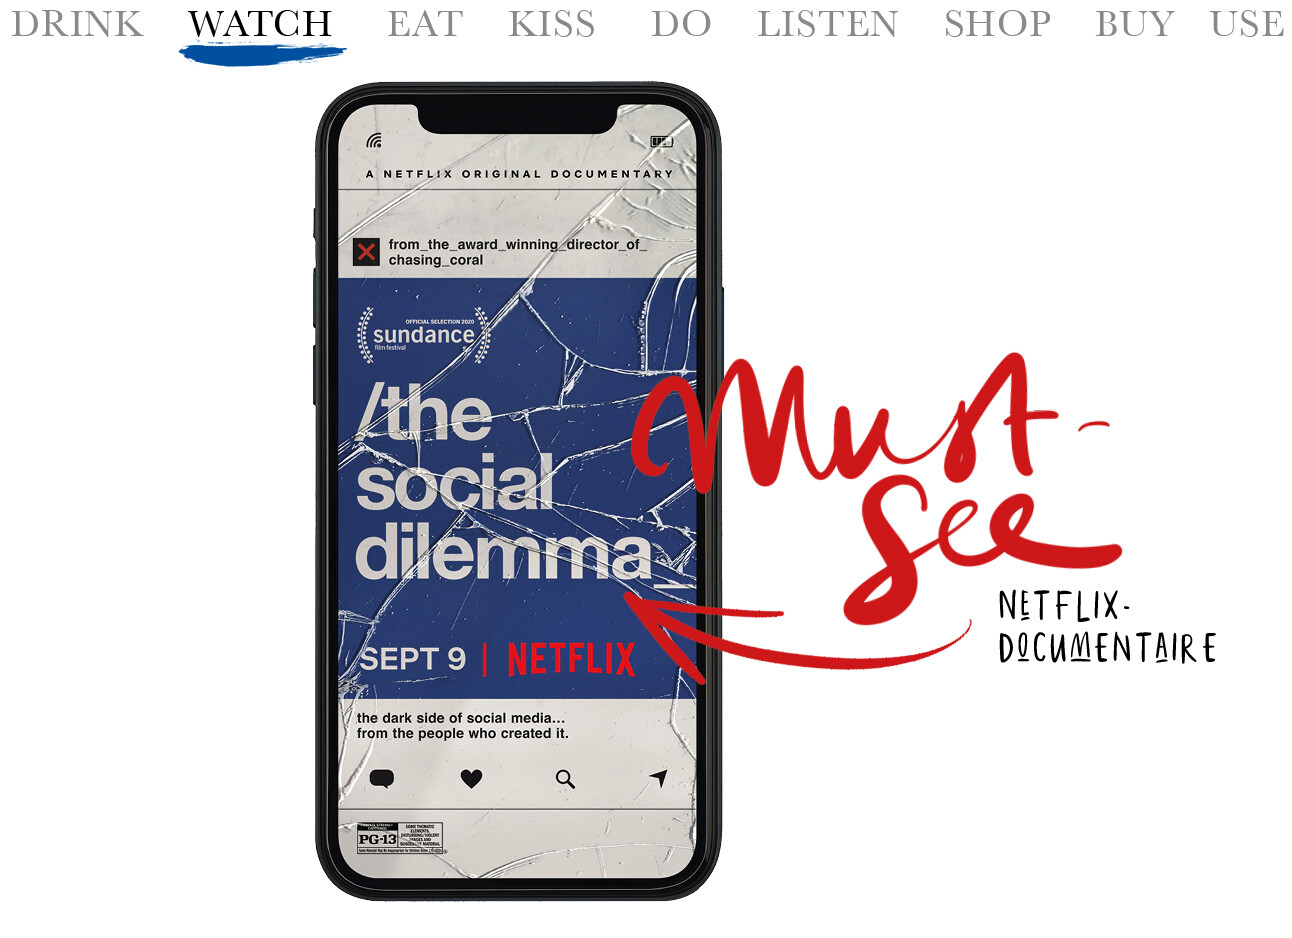 Today we watch The Social Dilemma